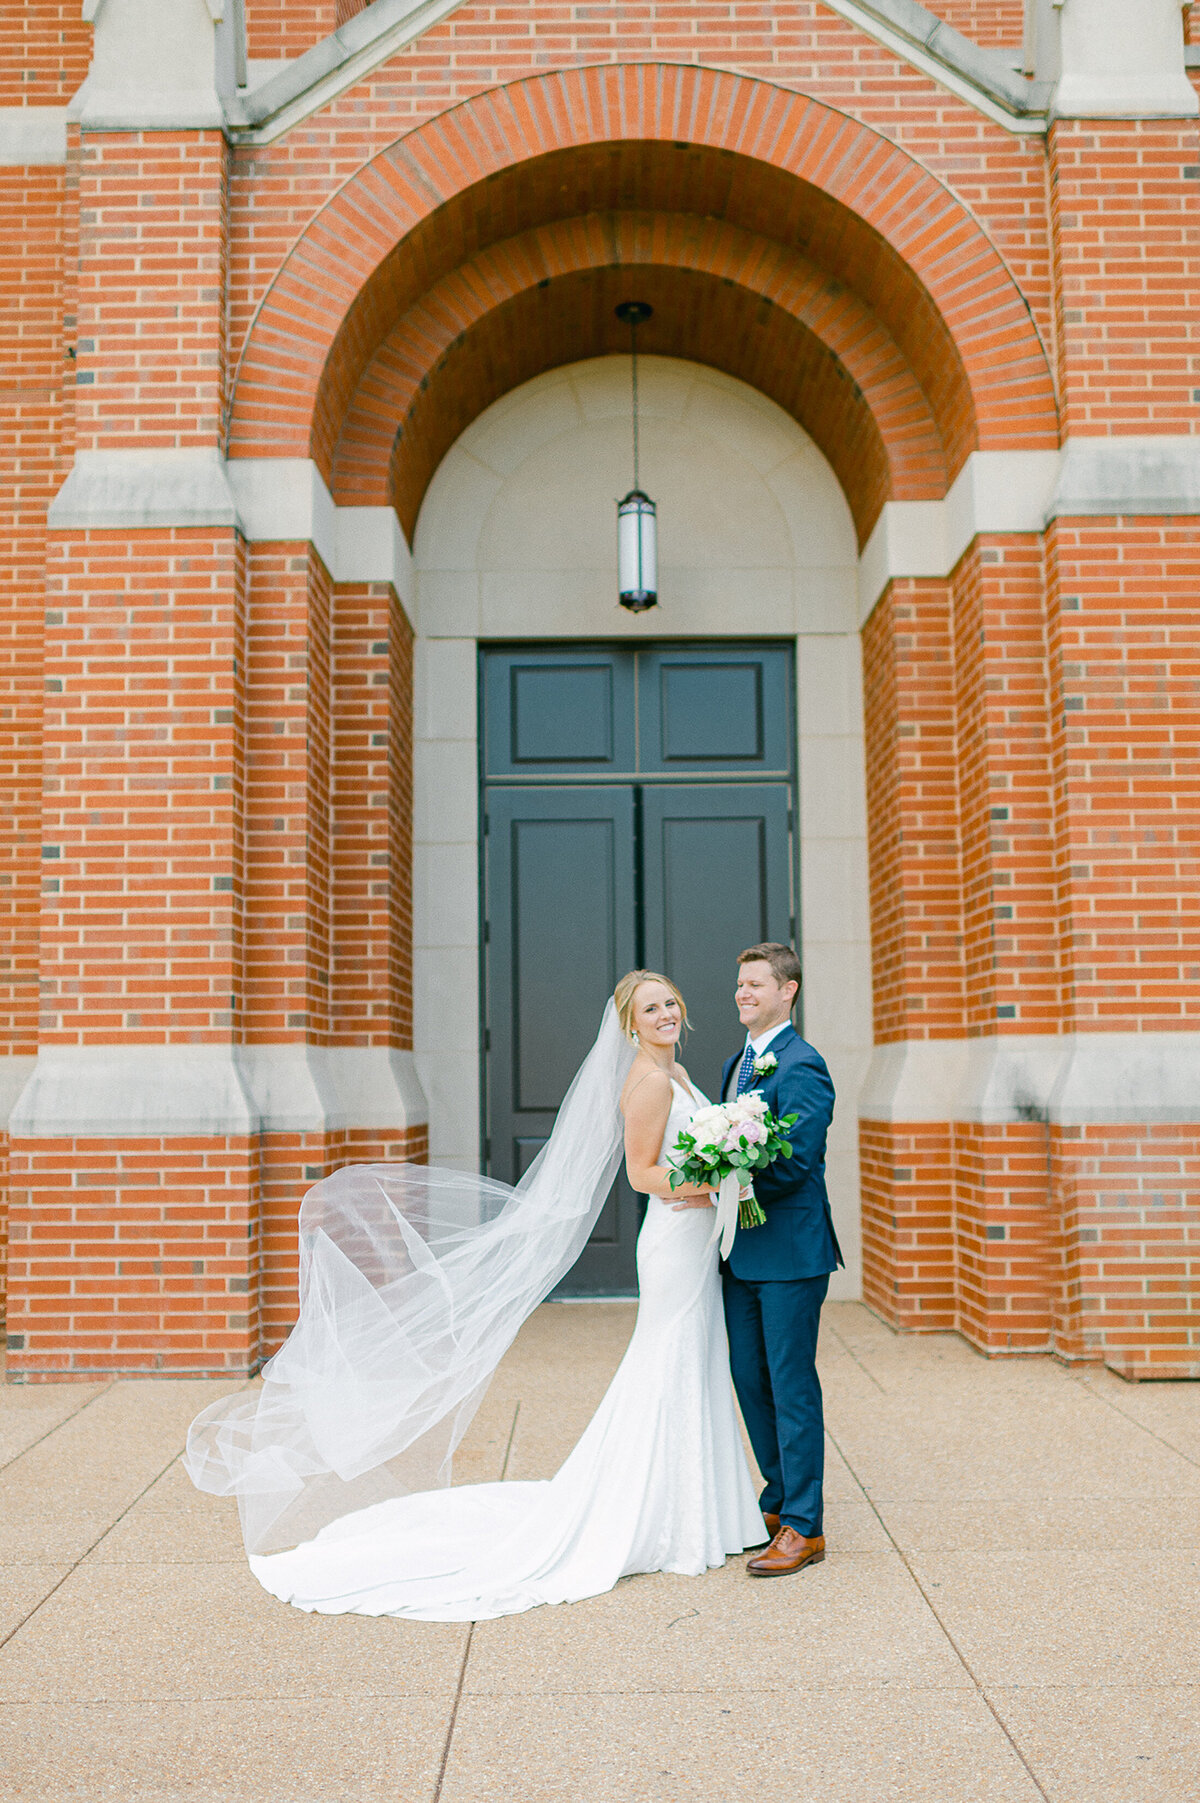 Jennifer Bosak Photography - DC Area Wedding Photography - DC, Virginia, Maryland - Kaitlyn + Jordan - Stone Tower Winery - 54